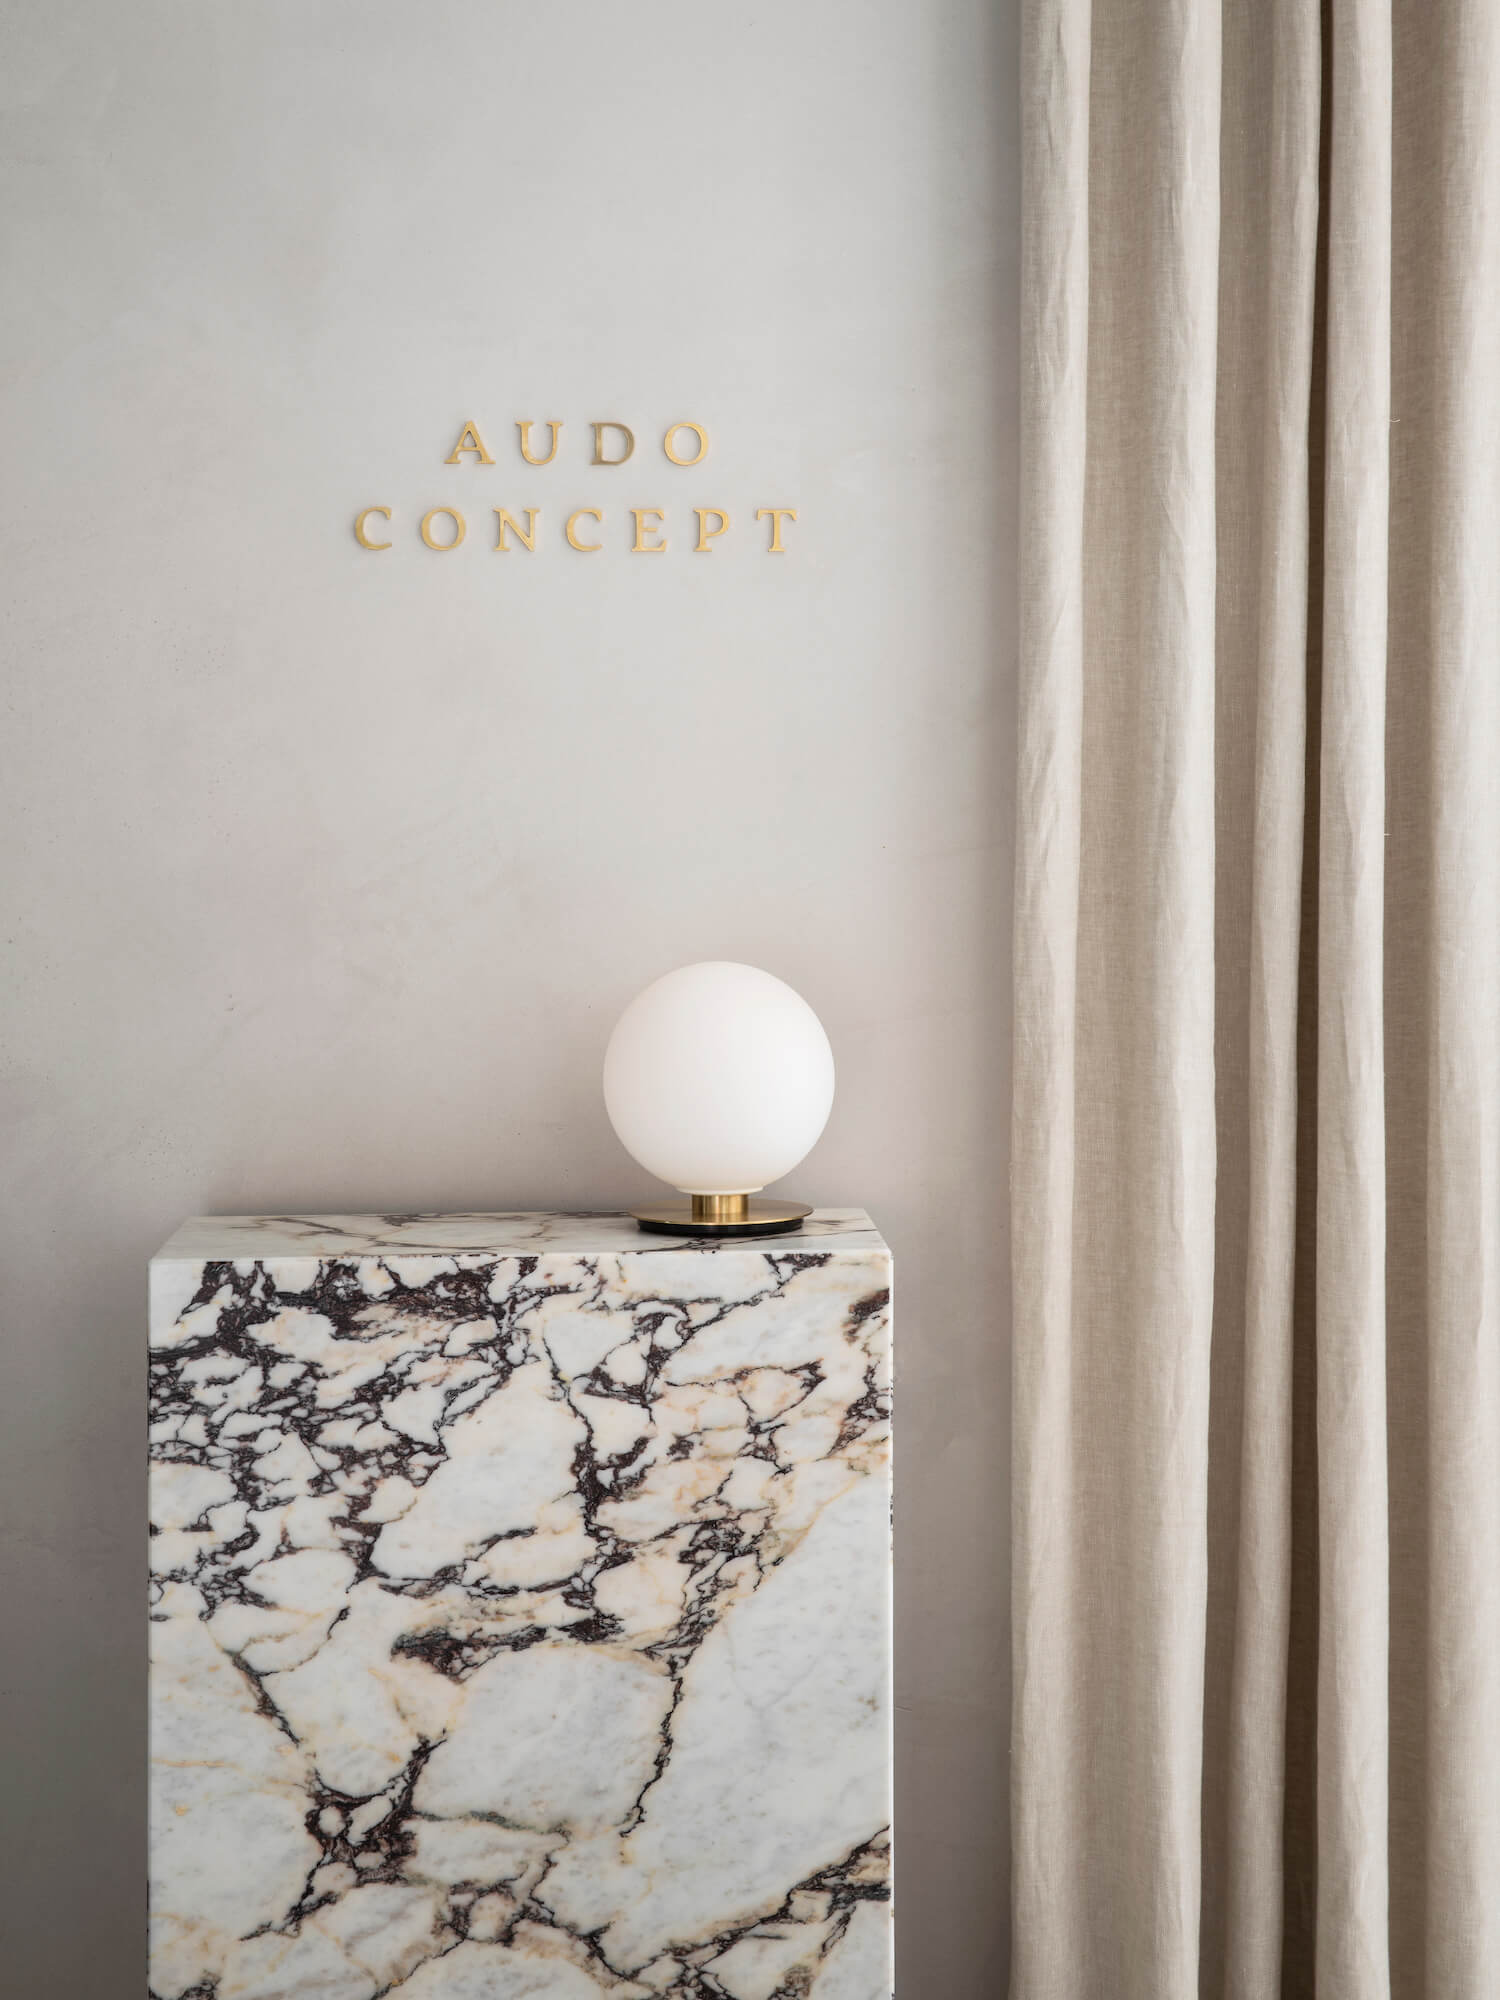 est living the audo concept norm architects menu 12